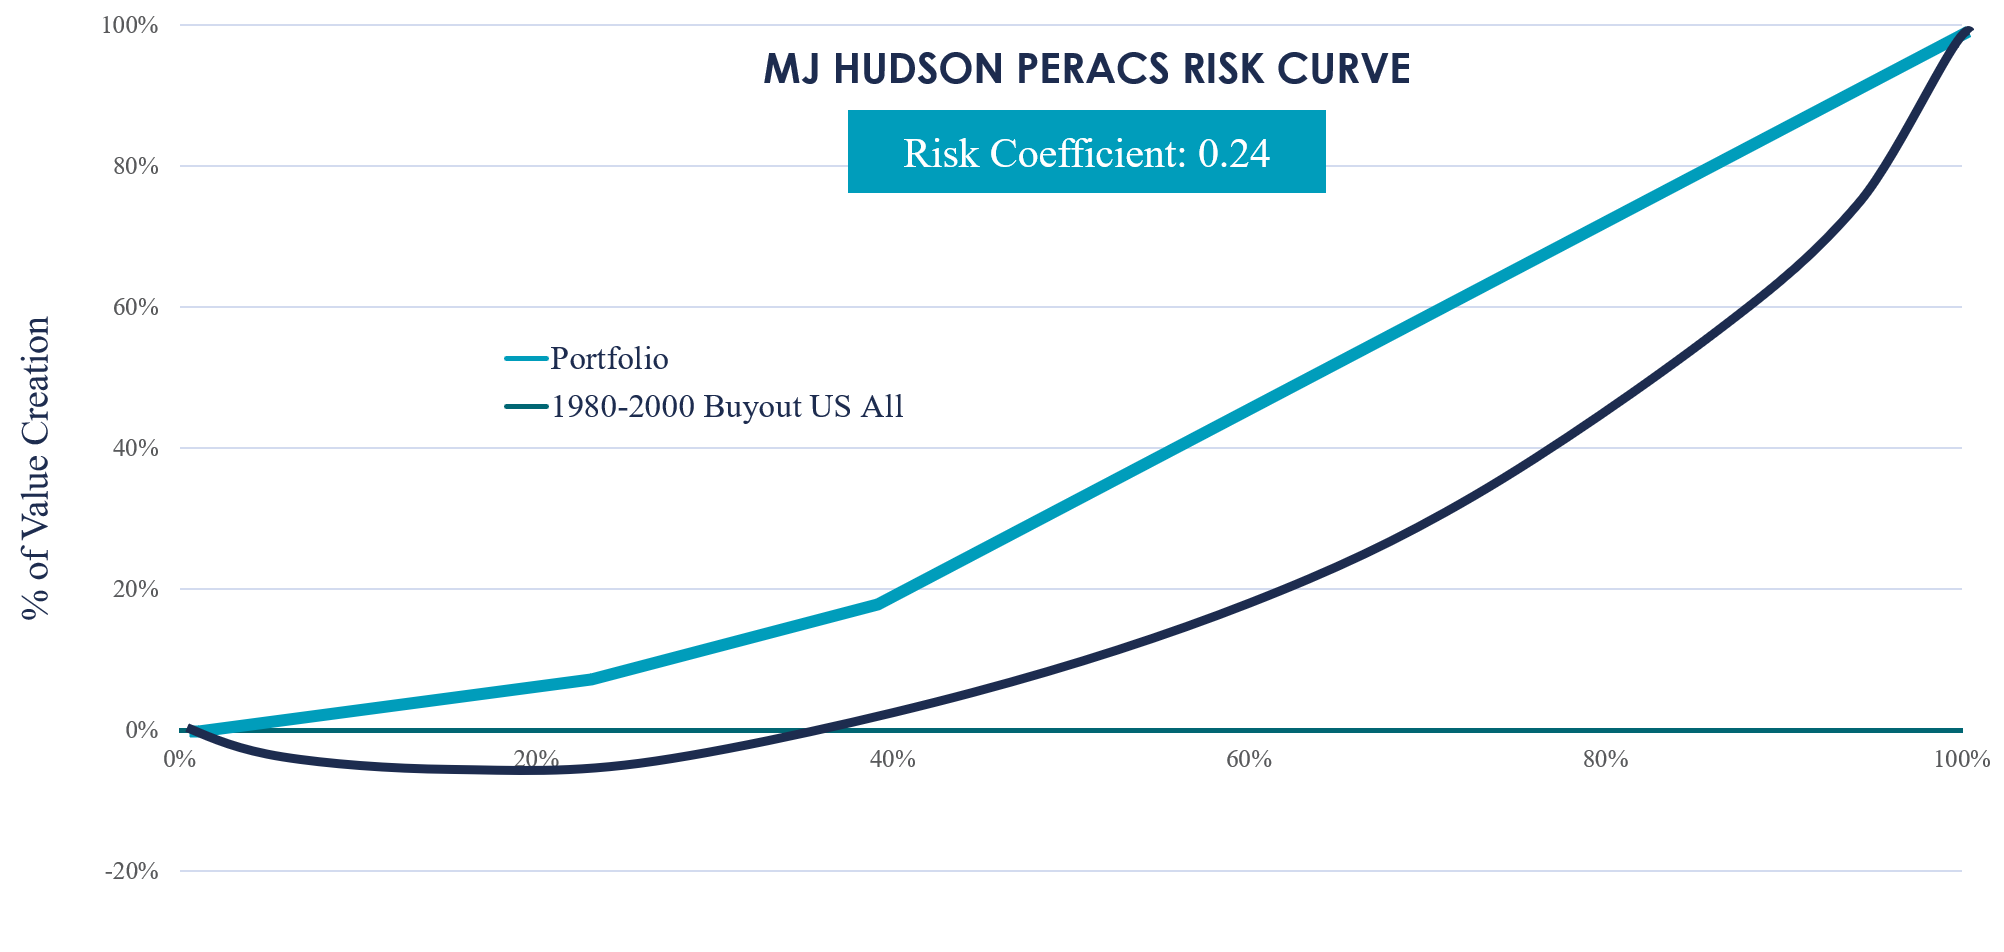 RISK CURVE